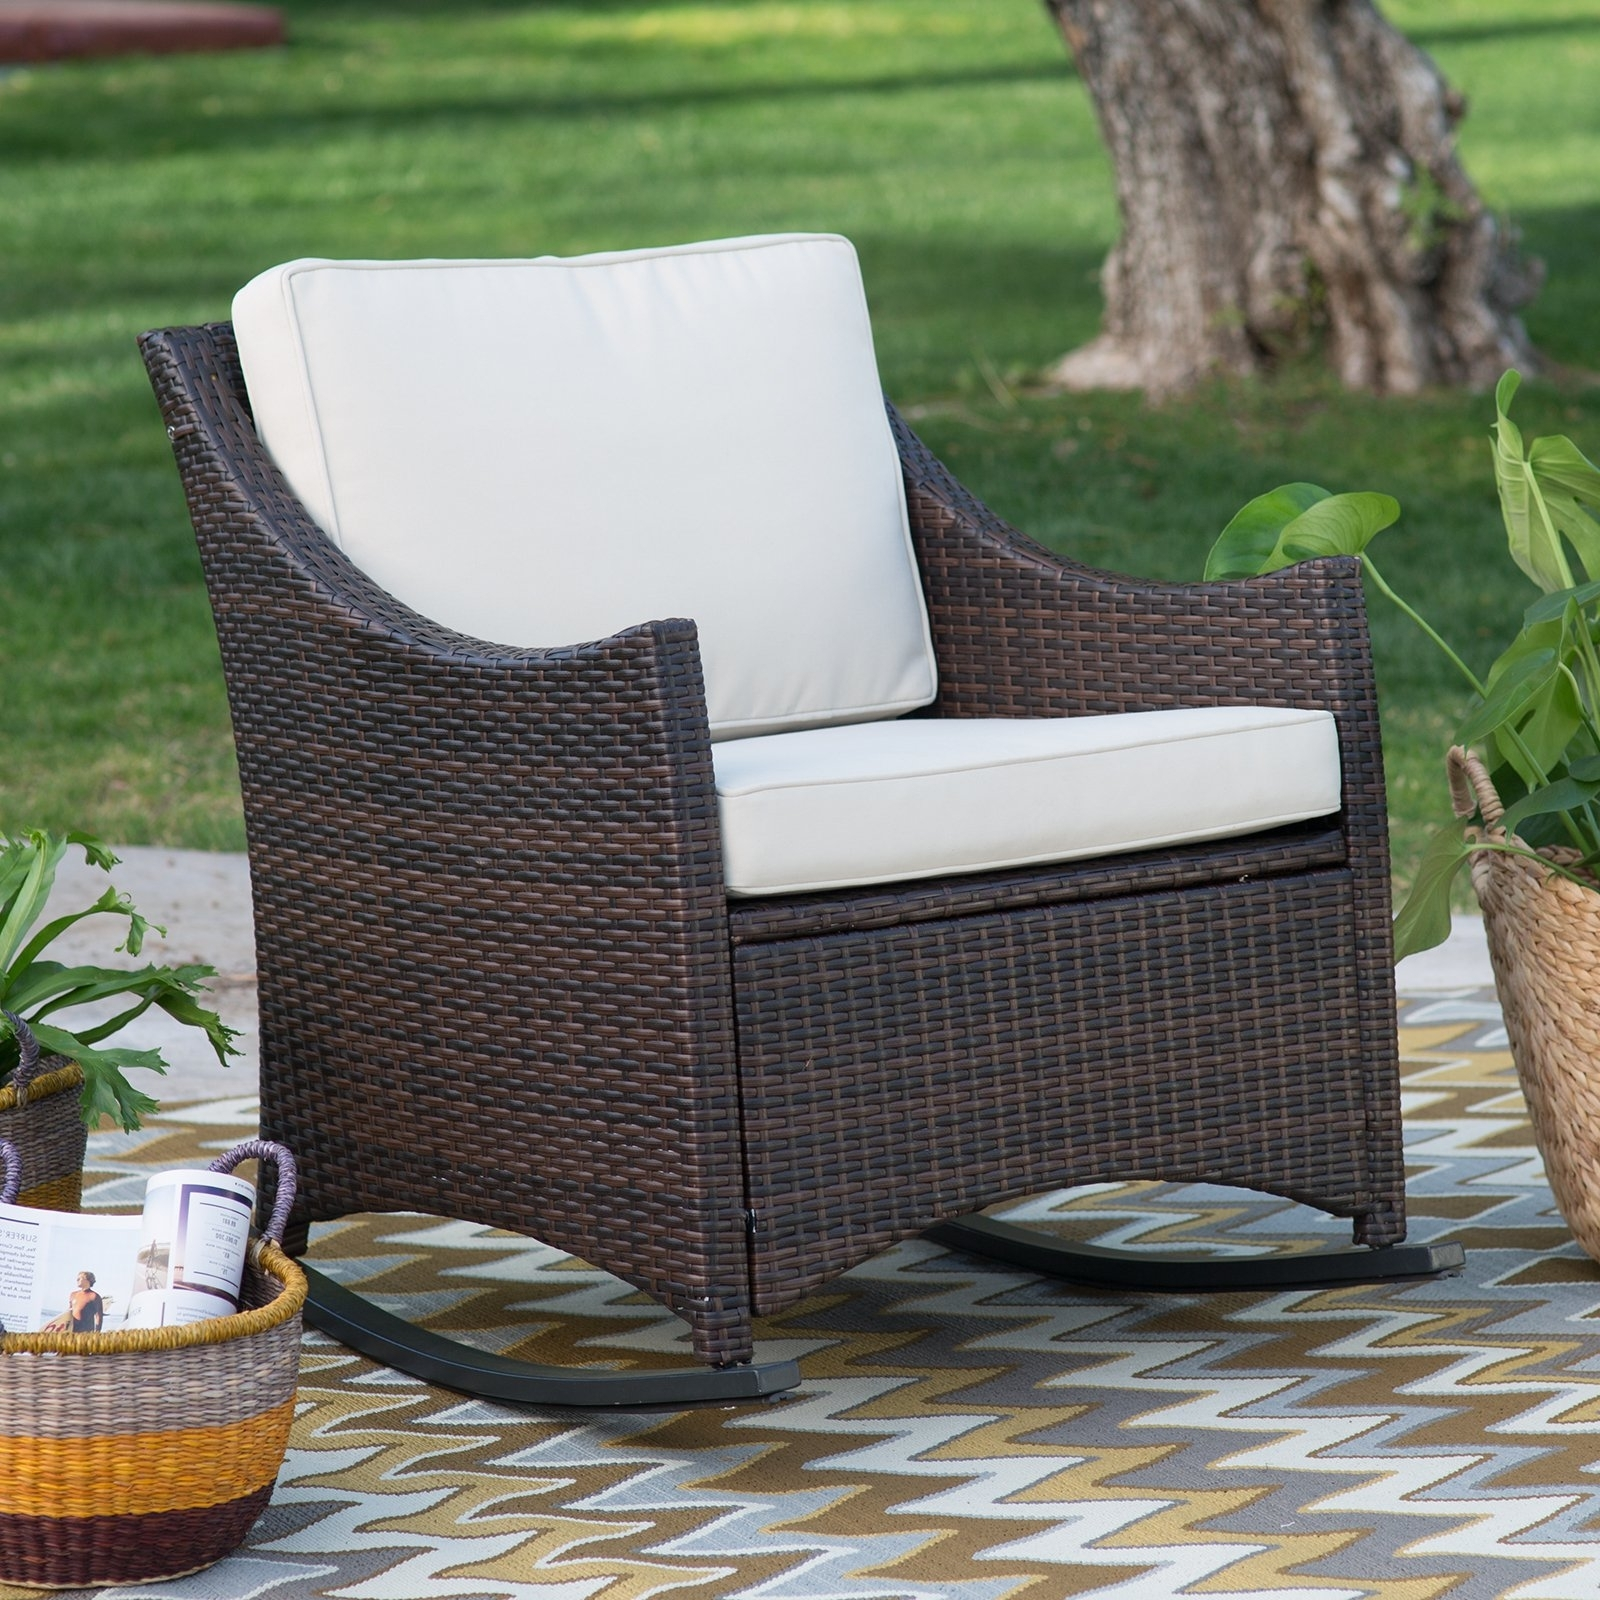 Resin Wicker Patio Rocking Chairs Intended For Widely Used Coral Coast Harrison Club Style Rocking Chair With Cushion – Walmart (View 12 of 15)